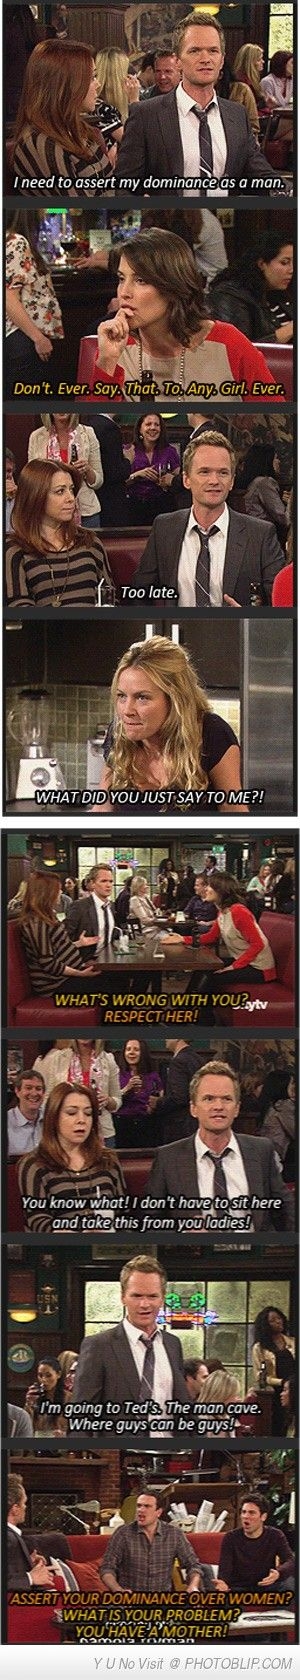 """Barney: """"I need to assert my dominance as a man."""" Robin: """"Don't. Ever. Say. That. To. Any. Girl. Ever."""" Barney: """"Too late!"""""""